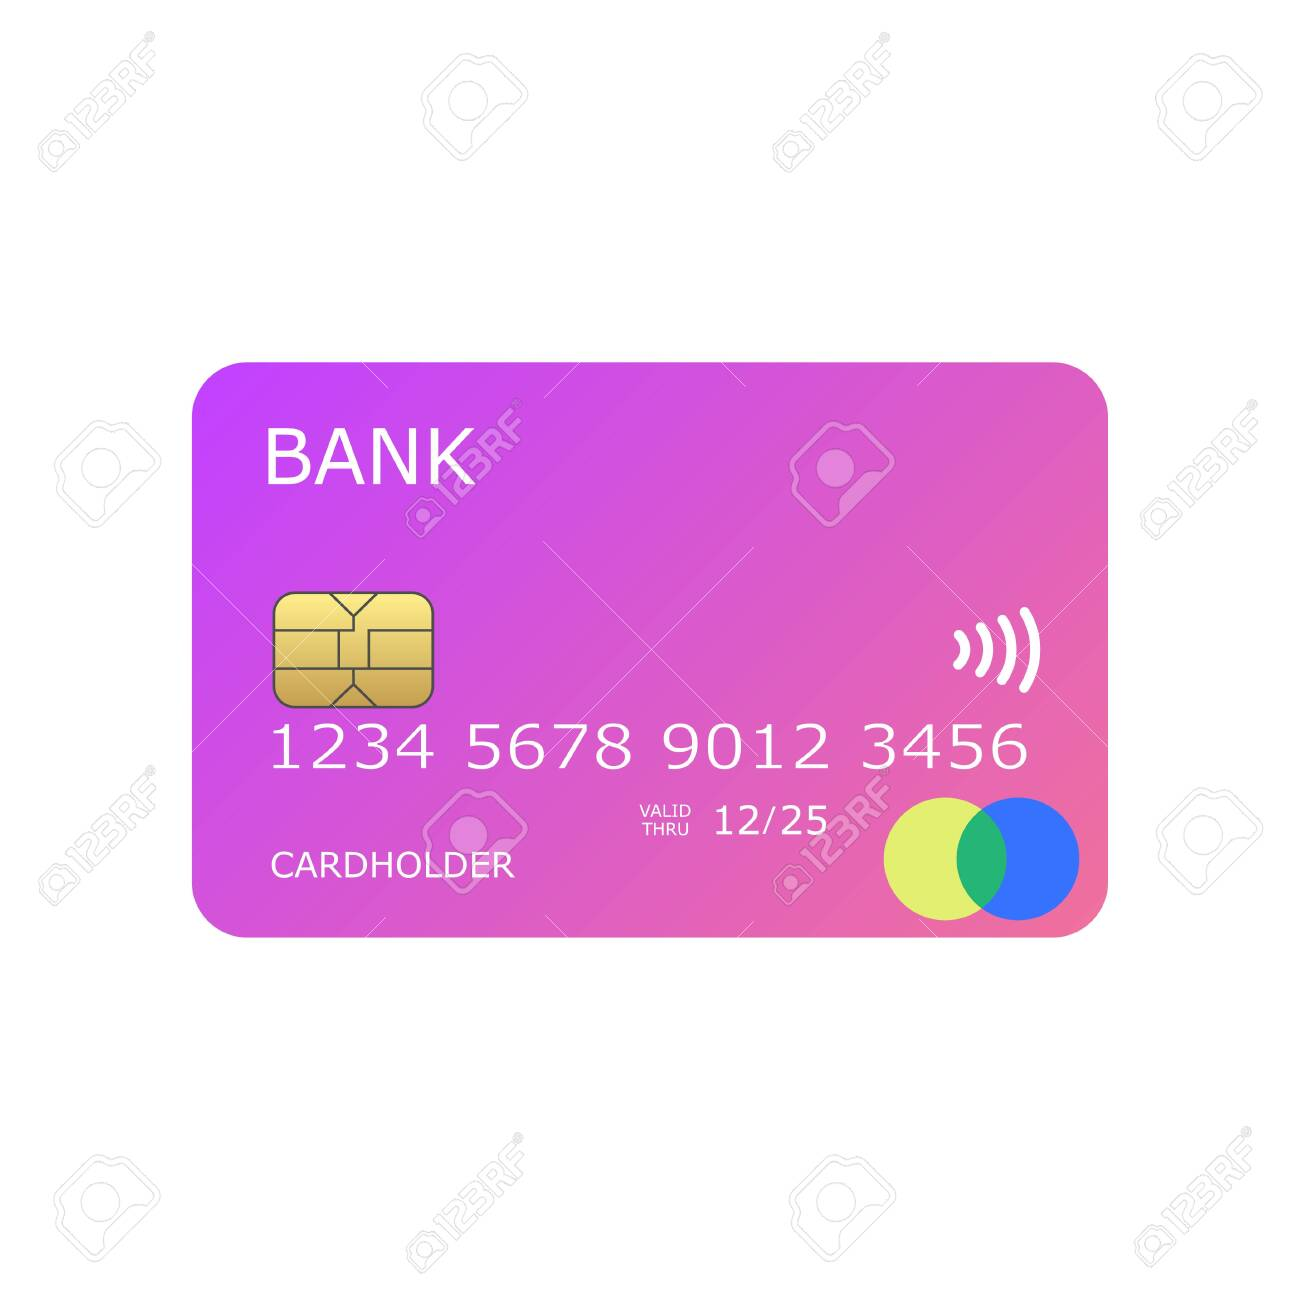 colorful pinky mock up credit card vector illustration - 129123657